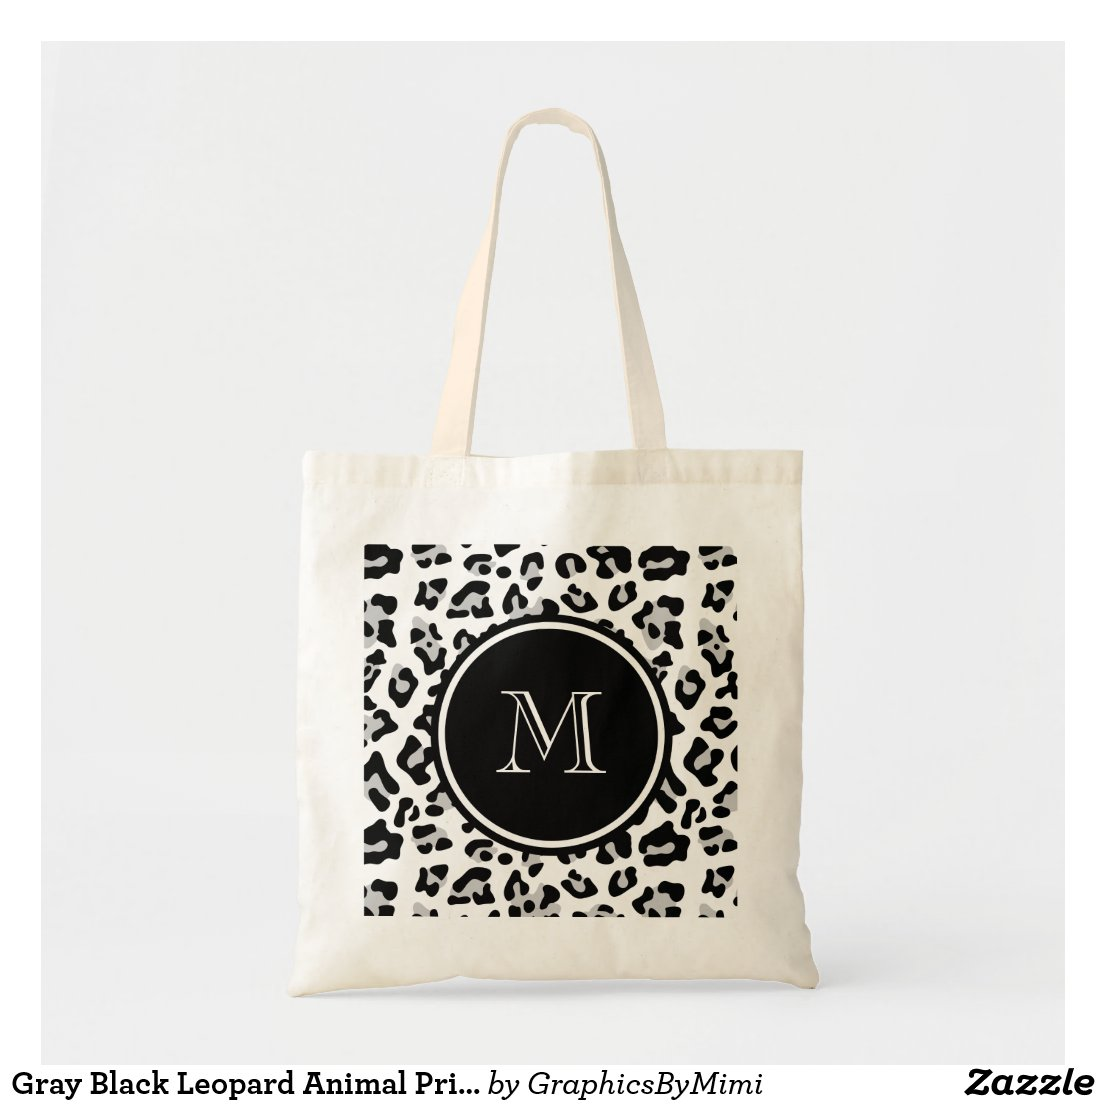 Grey Black Leopard Animal Print with Monogram Tote Bag